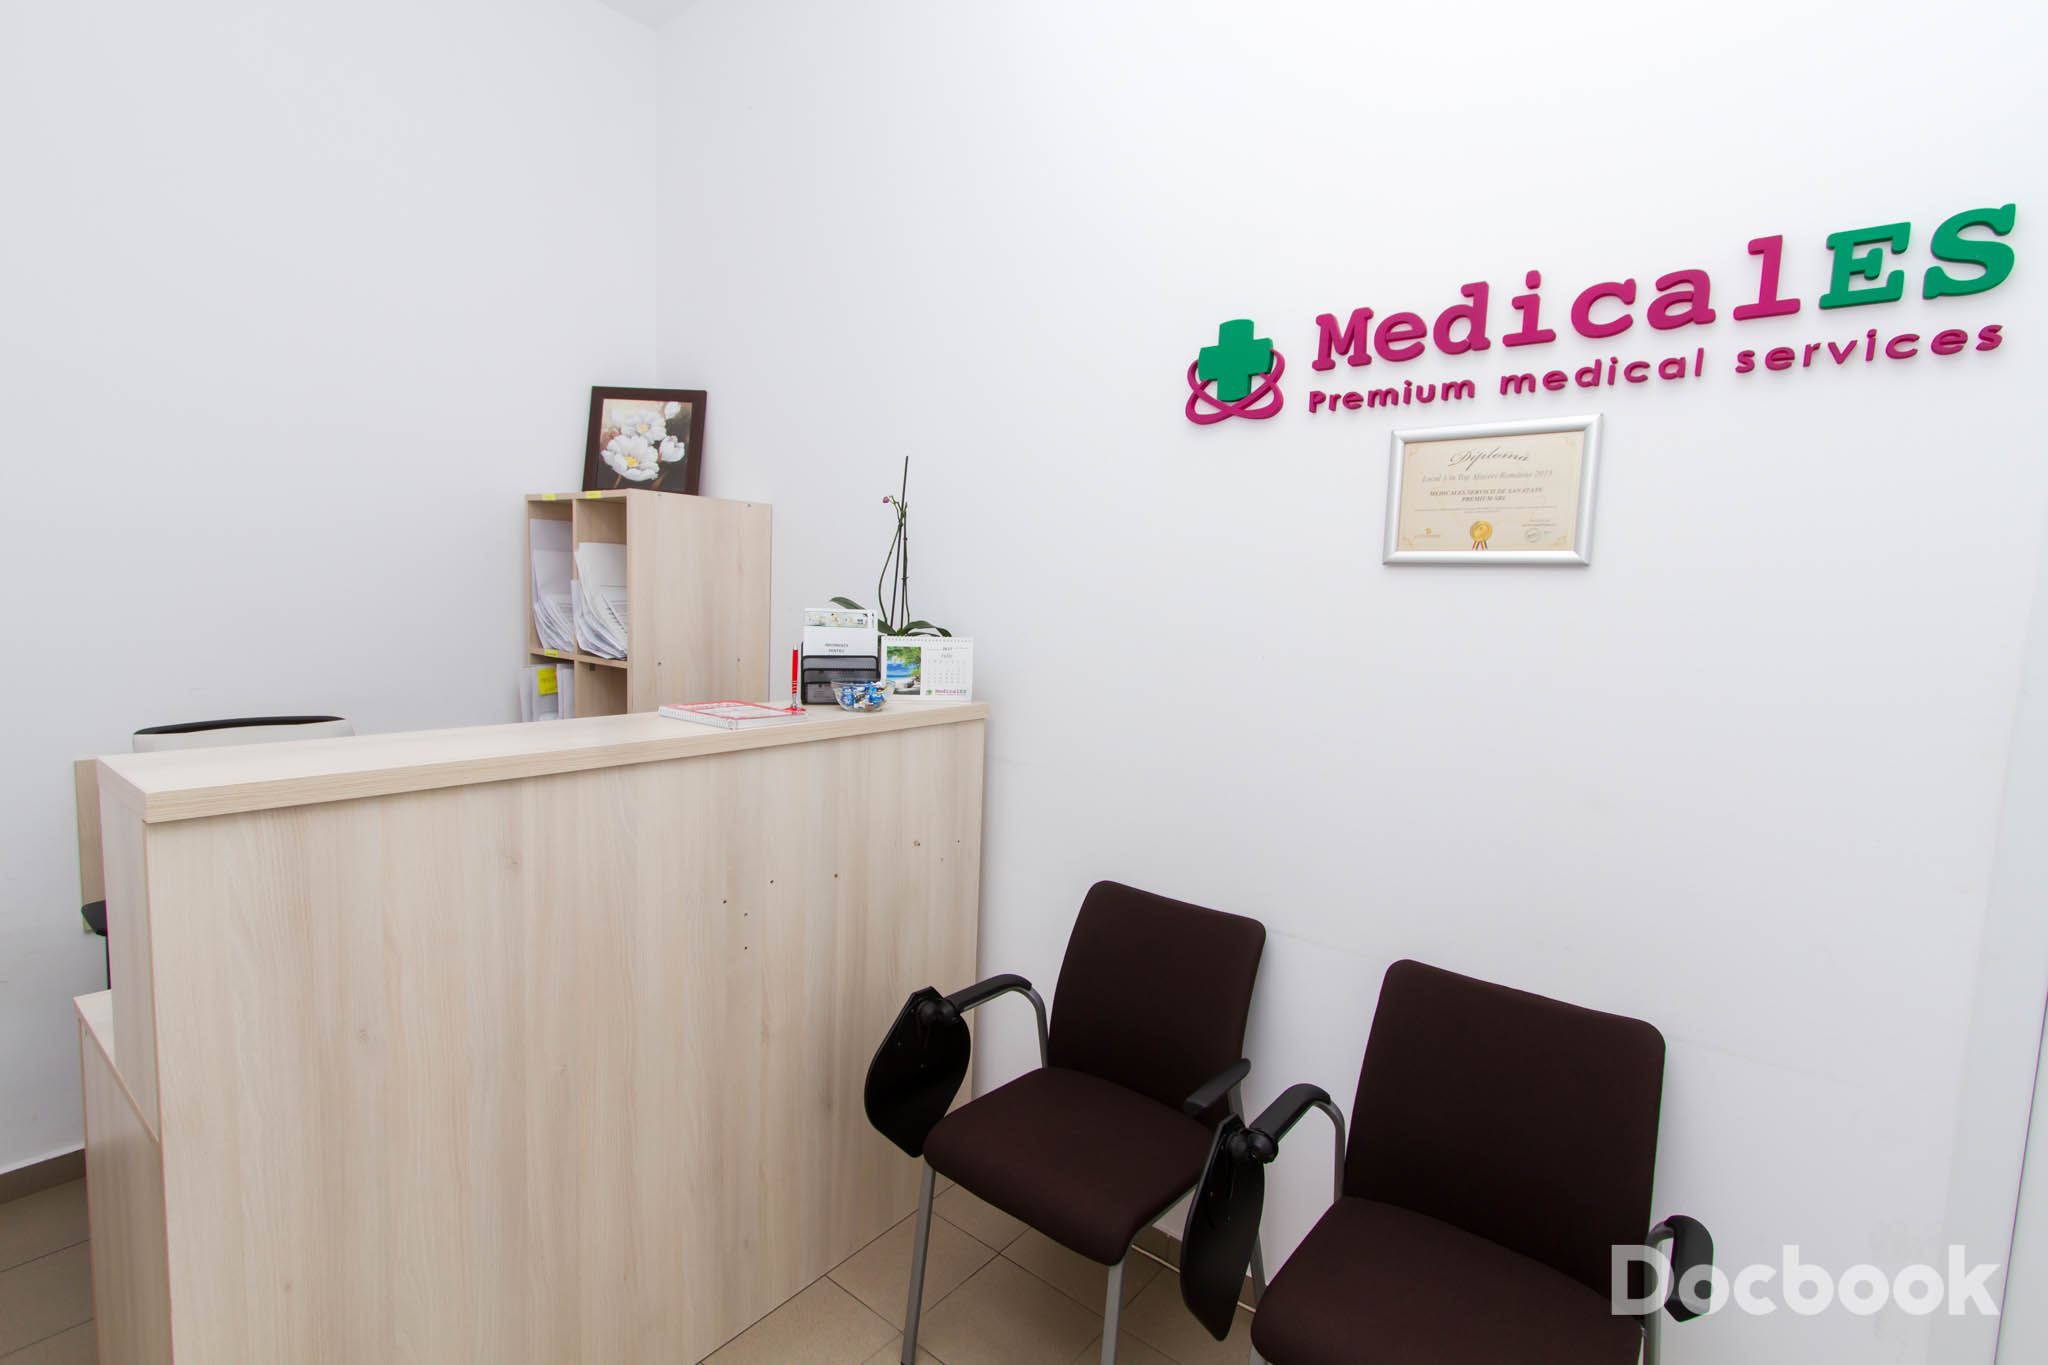 Clinica Medicales Burghele 1 CT